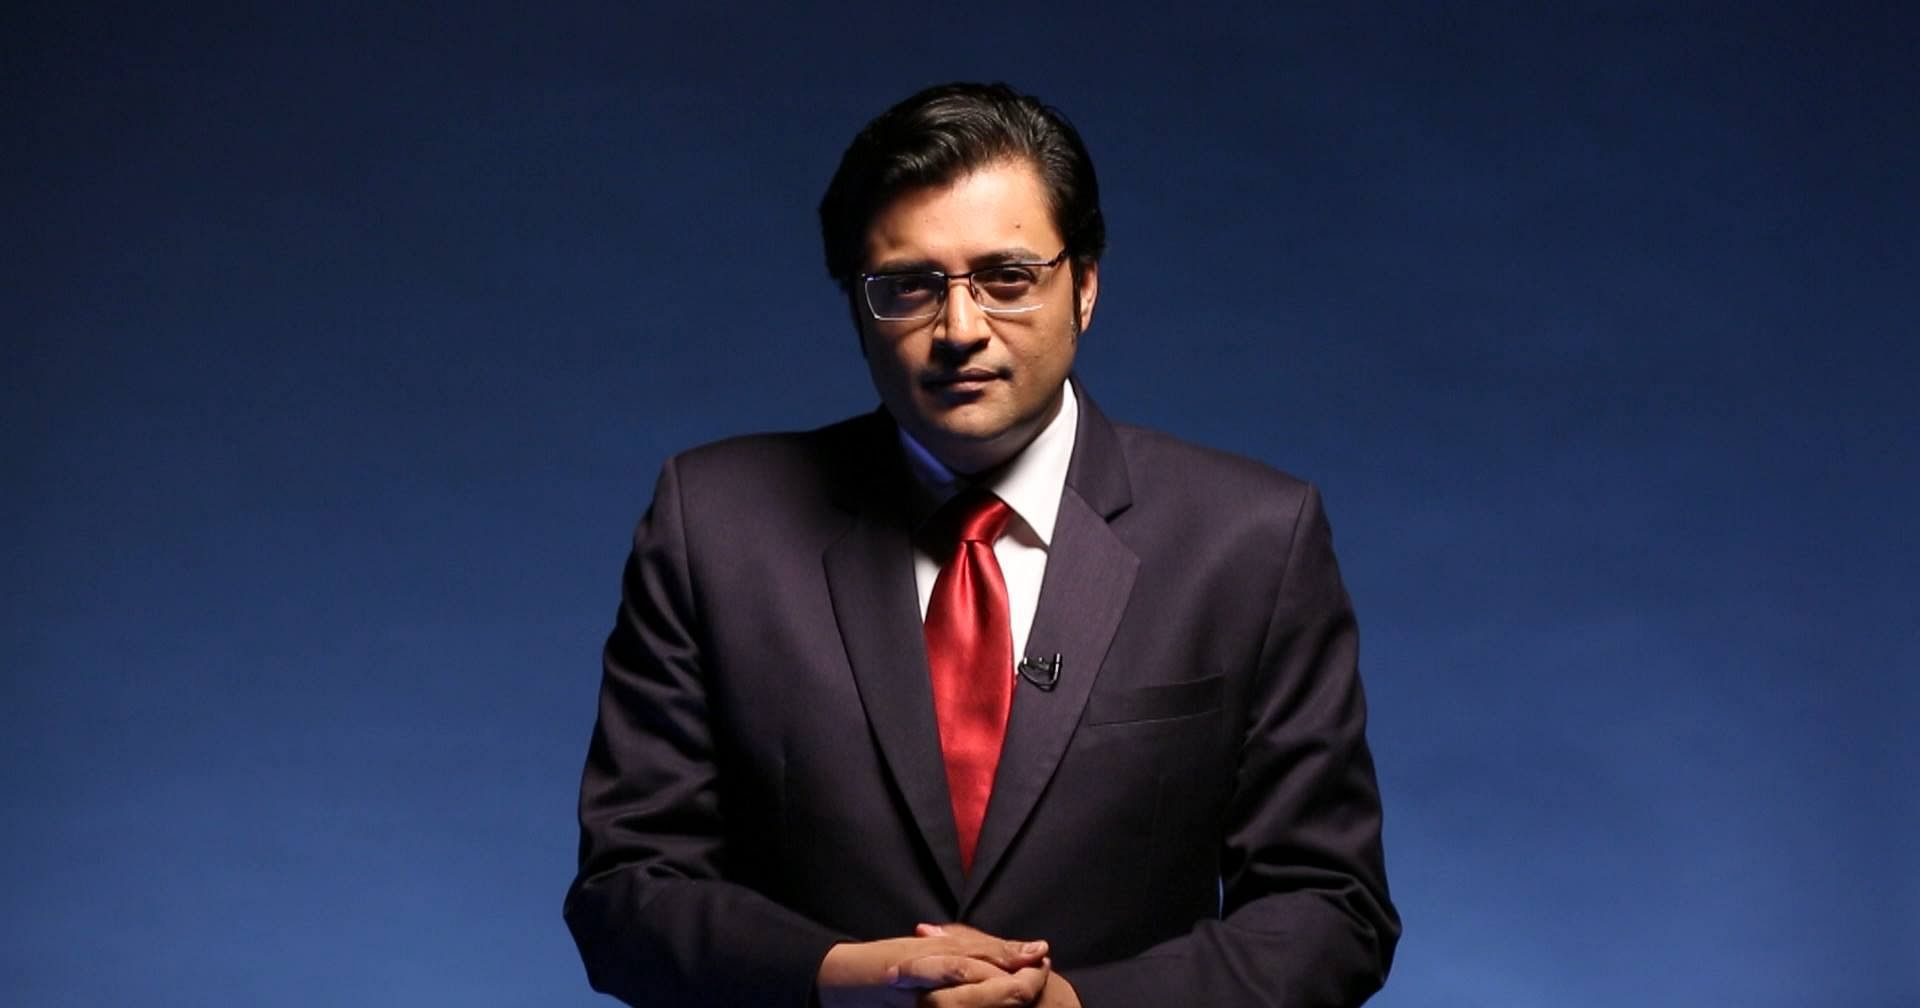 Some people targeted with greater intensity, need more protection, says SC in connection with FIRs against Arnab Close